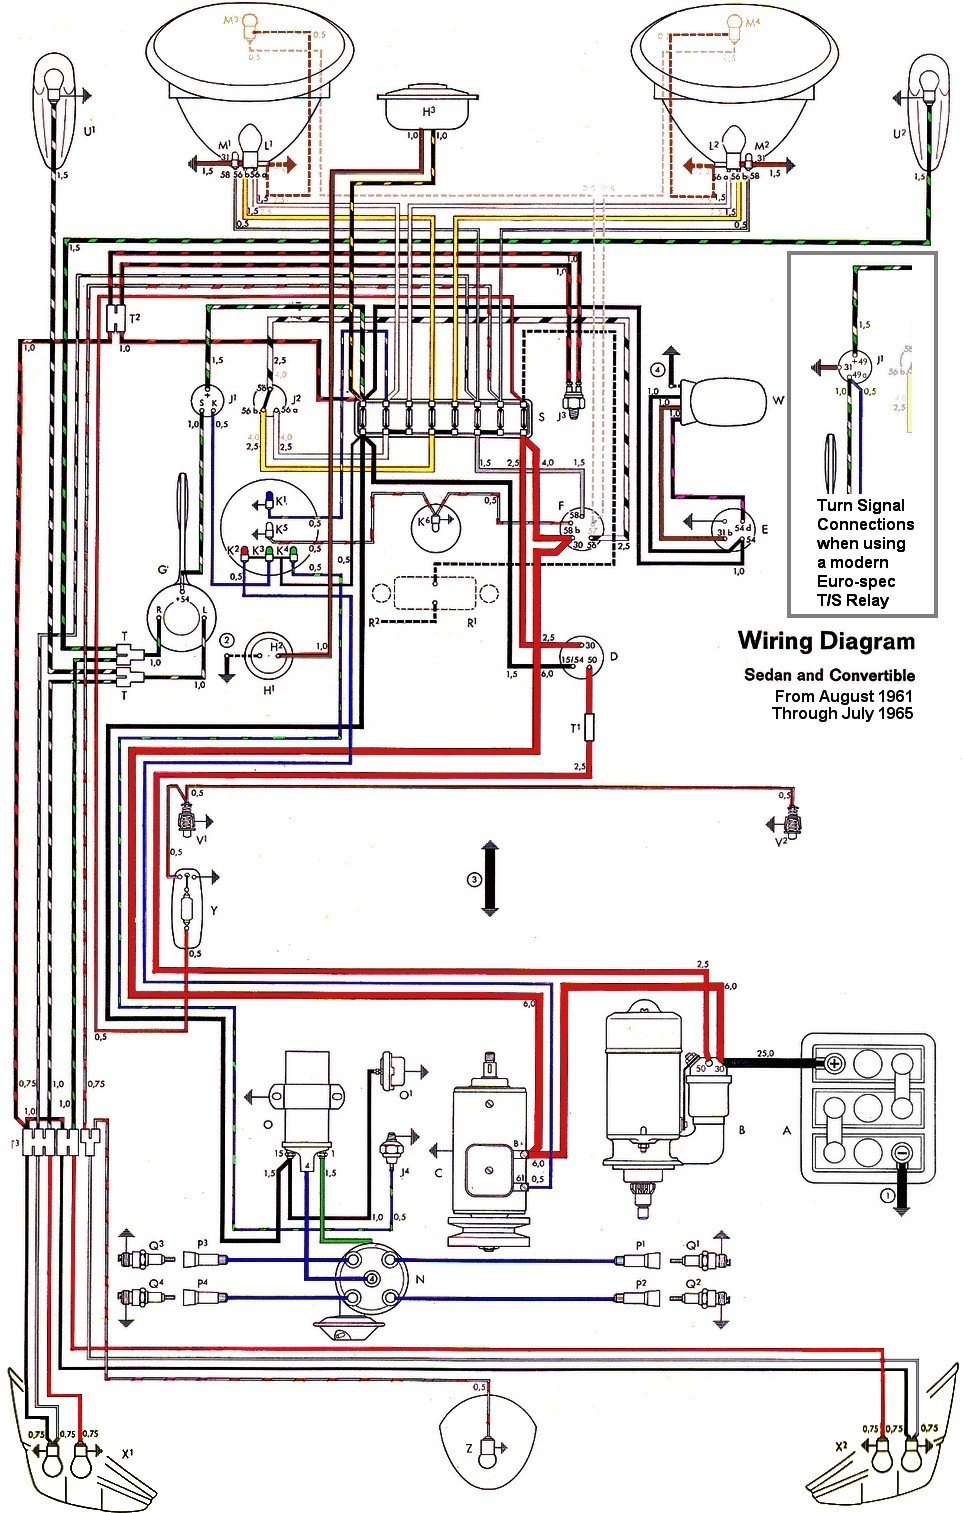 bug_62 65withinset wiring diagram vw beetle sedan and convertible 1961 1965 vw 1969 bug wiring diagram at creativeand.co